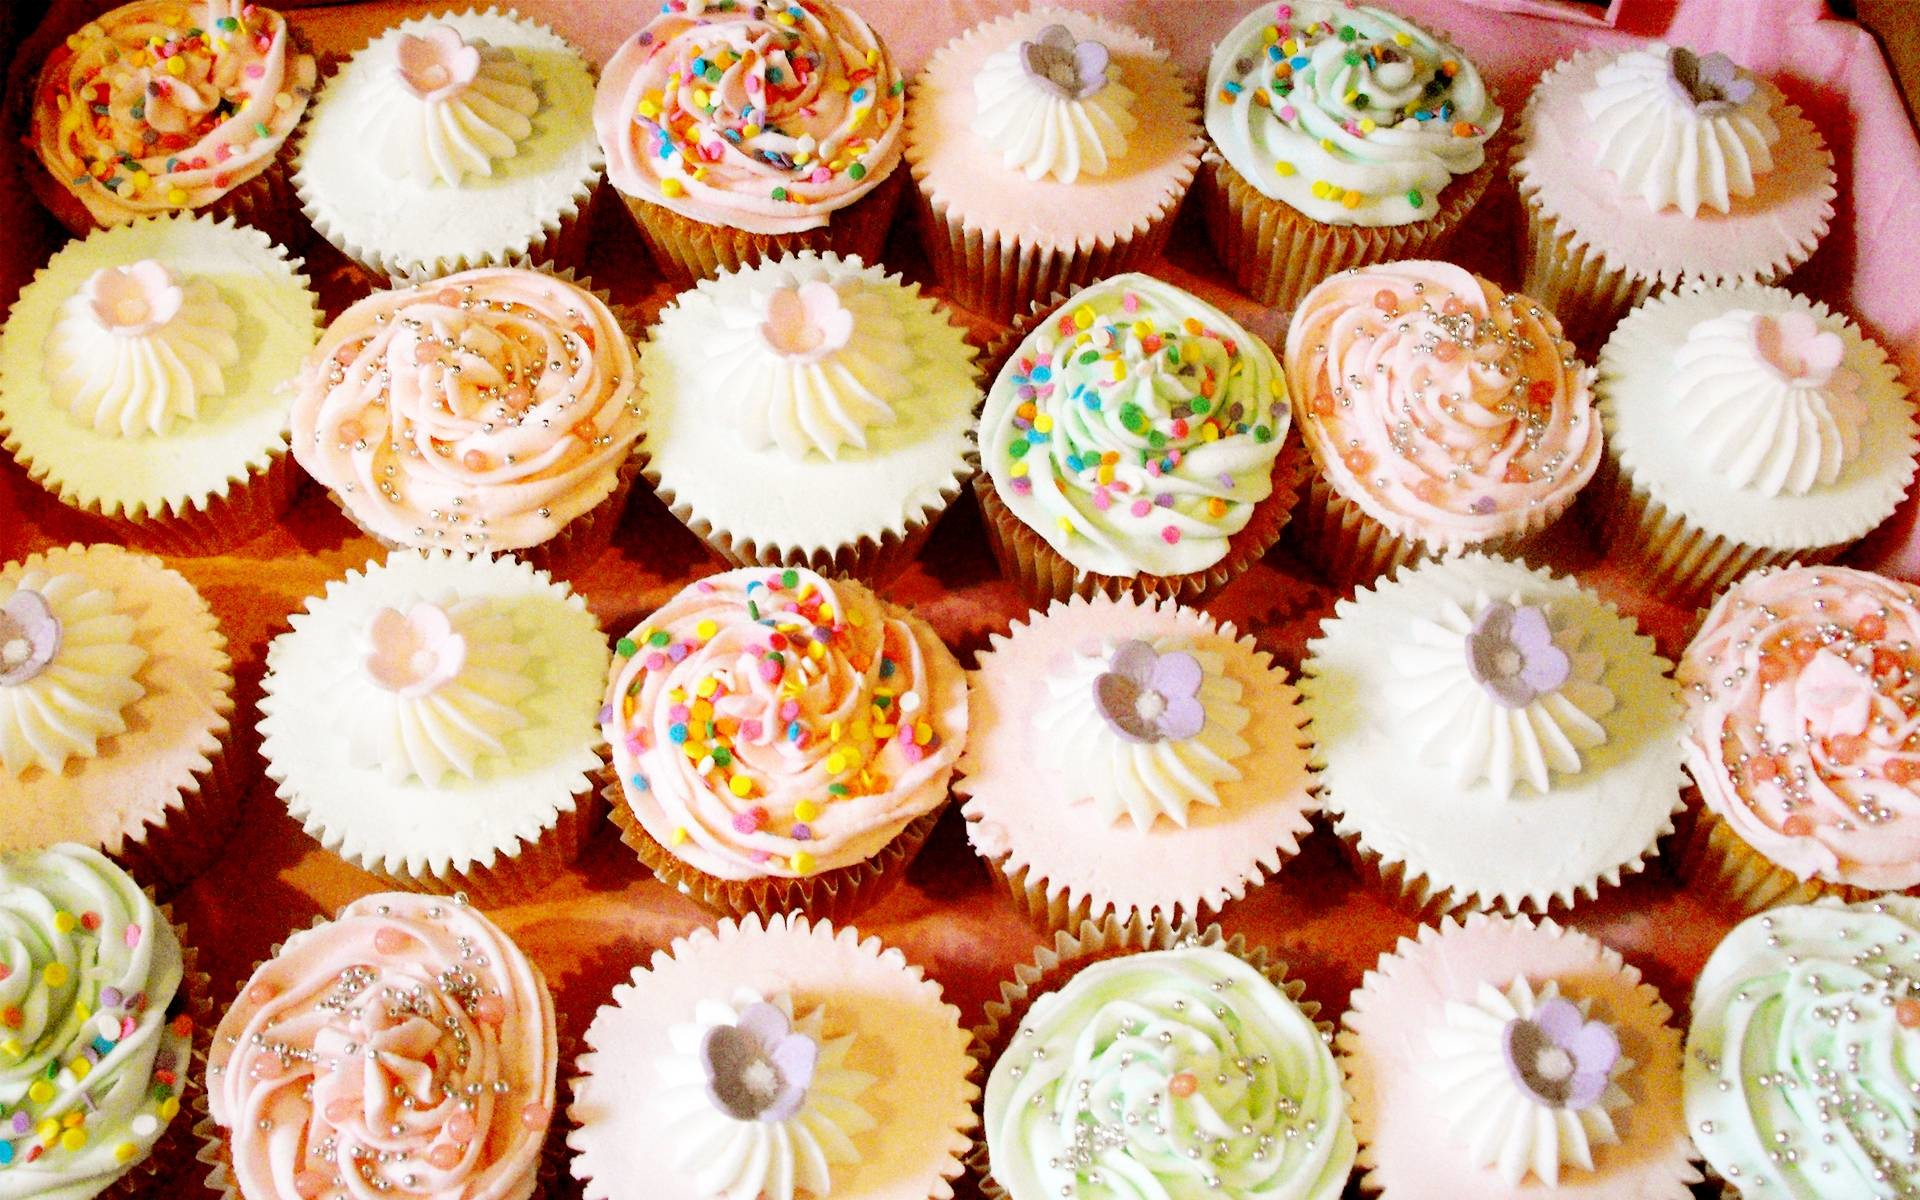 Res: 1920x1200, 30 Cupcake Wallpapers and Desktop Backgrounds | Solo Foods